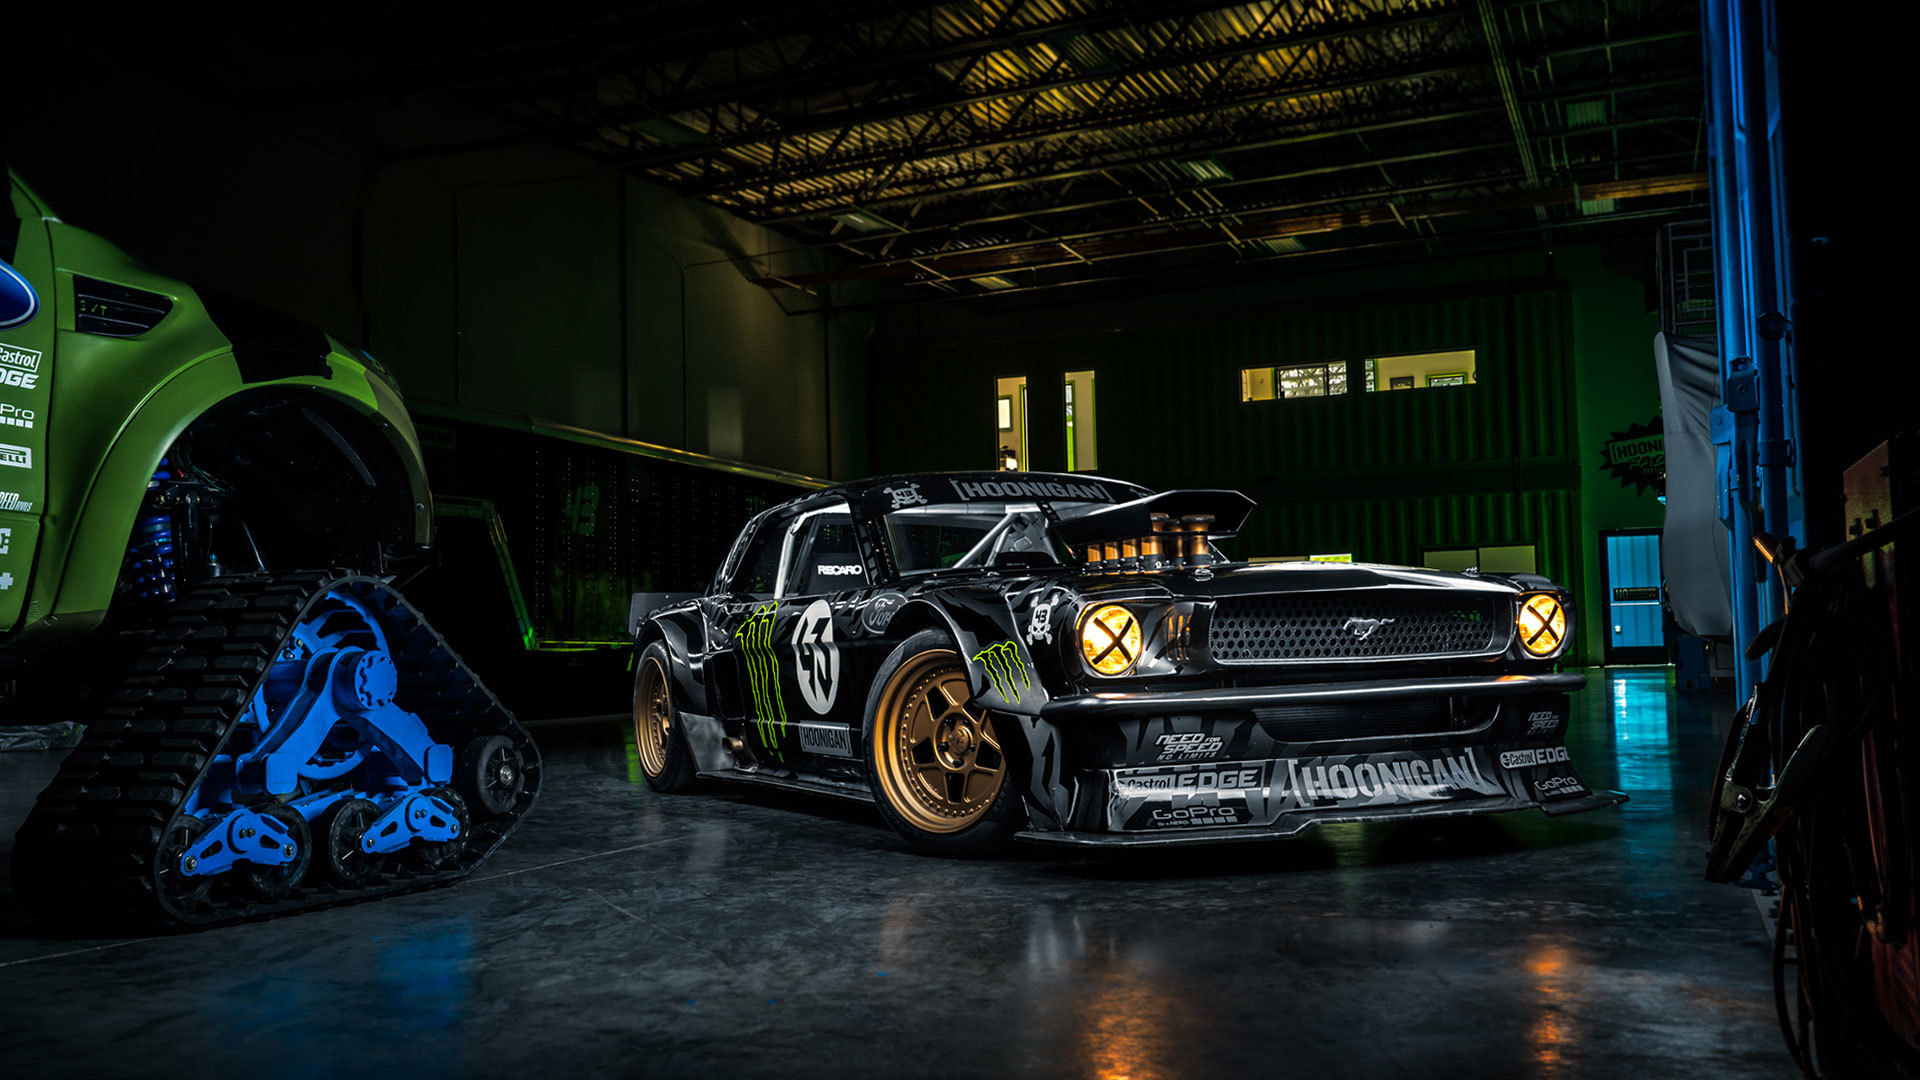 Ford mustang rtr 1965 hoonicorn 845 hp gymkhana seven front 1920x1080